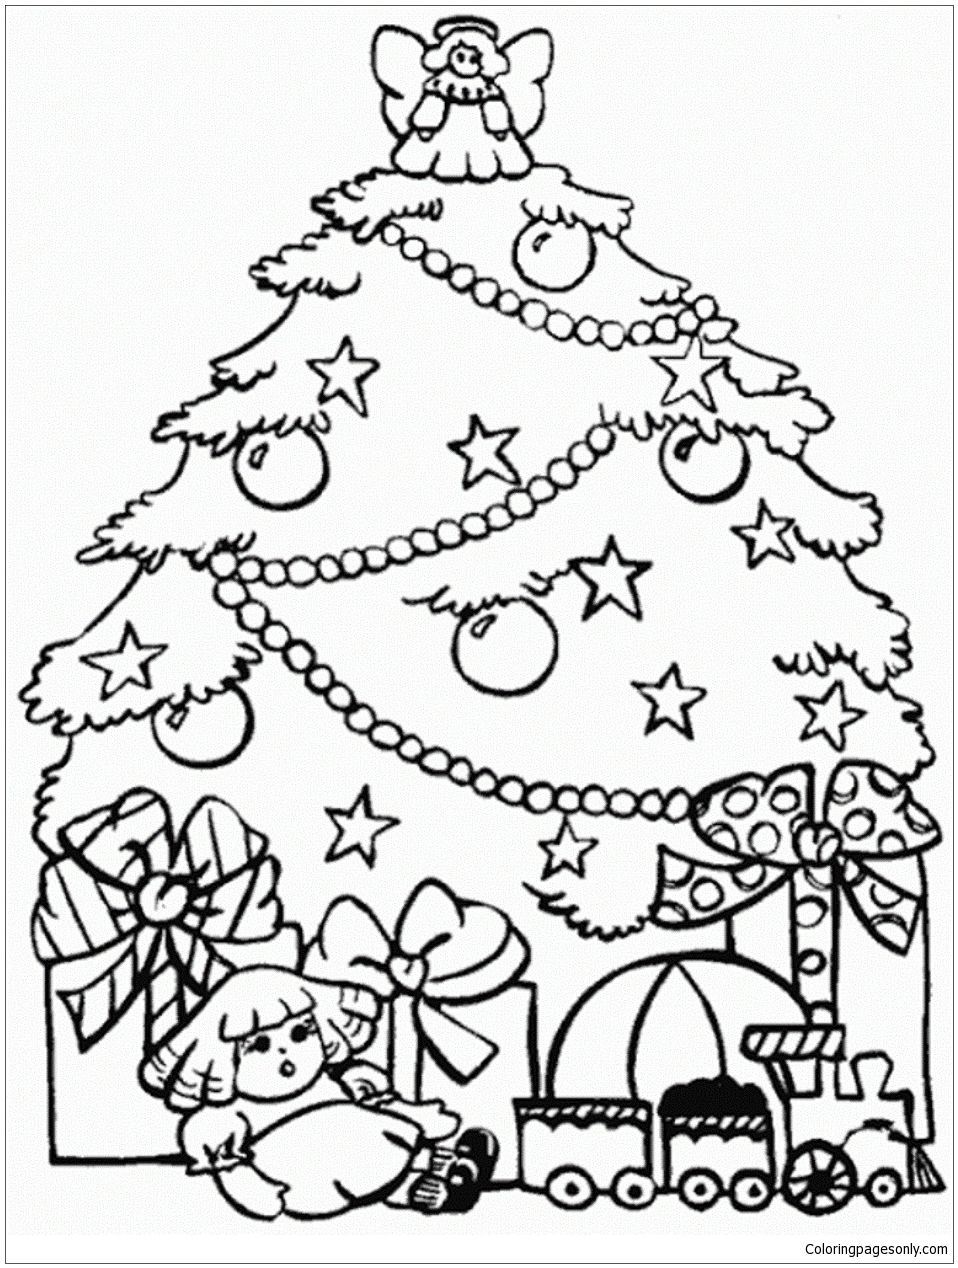 Free Coloring Pages Download Presents And Christmas Tree Page Of